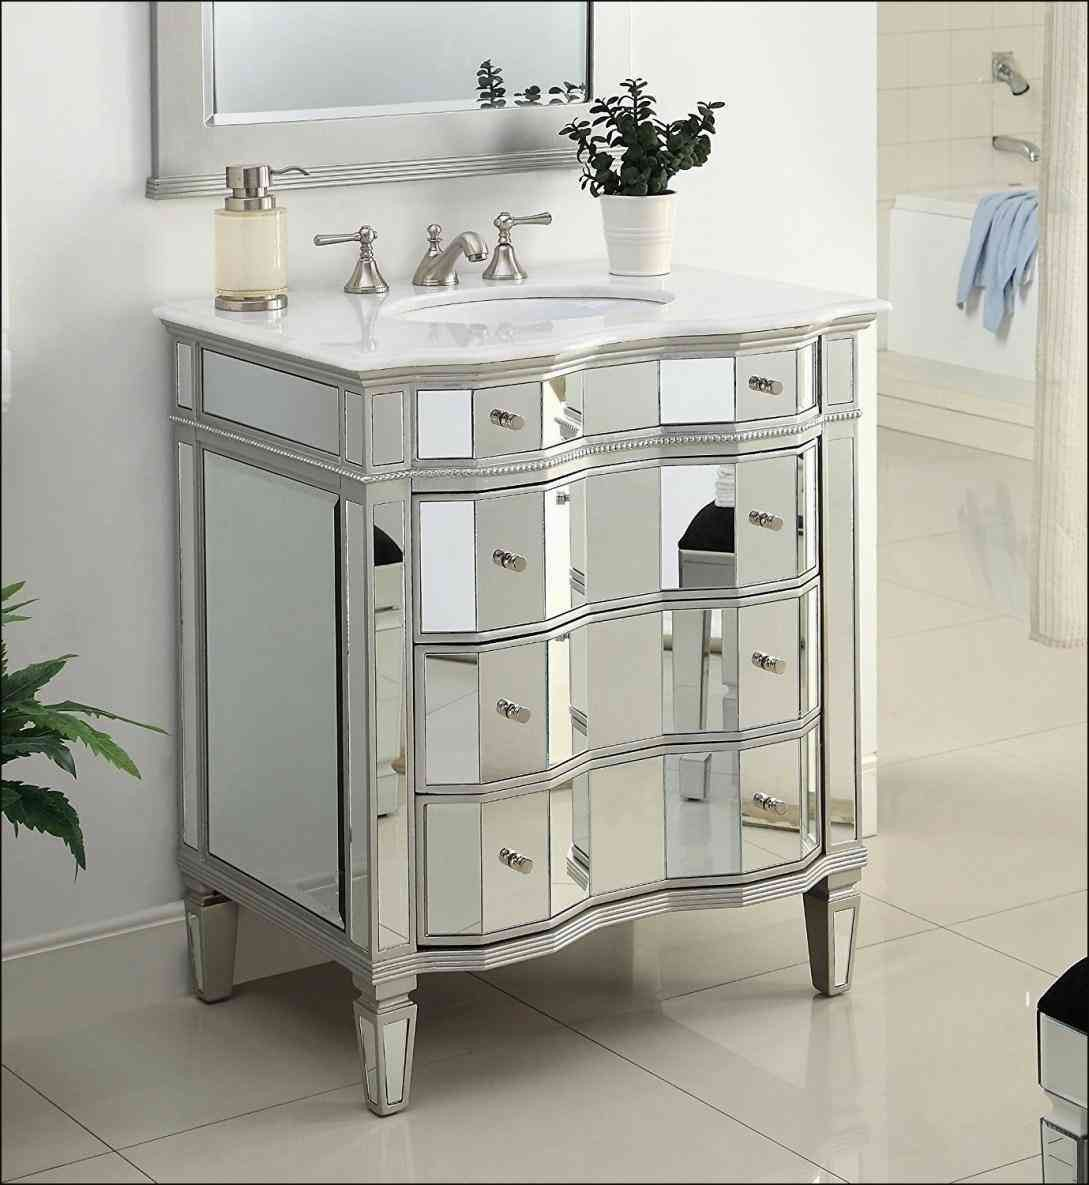 70 Bed Bath And Beyond Bathroom Cabinet Lowes Paint Colors Interior Check More At Http 1coolair